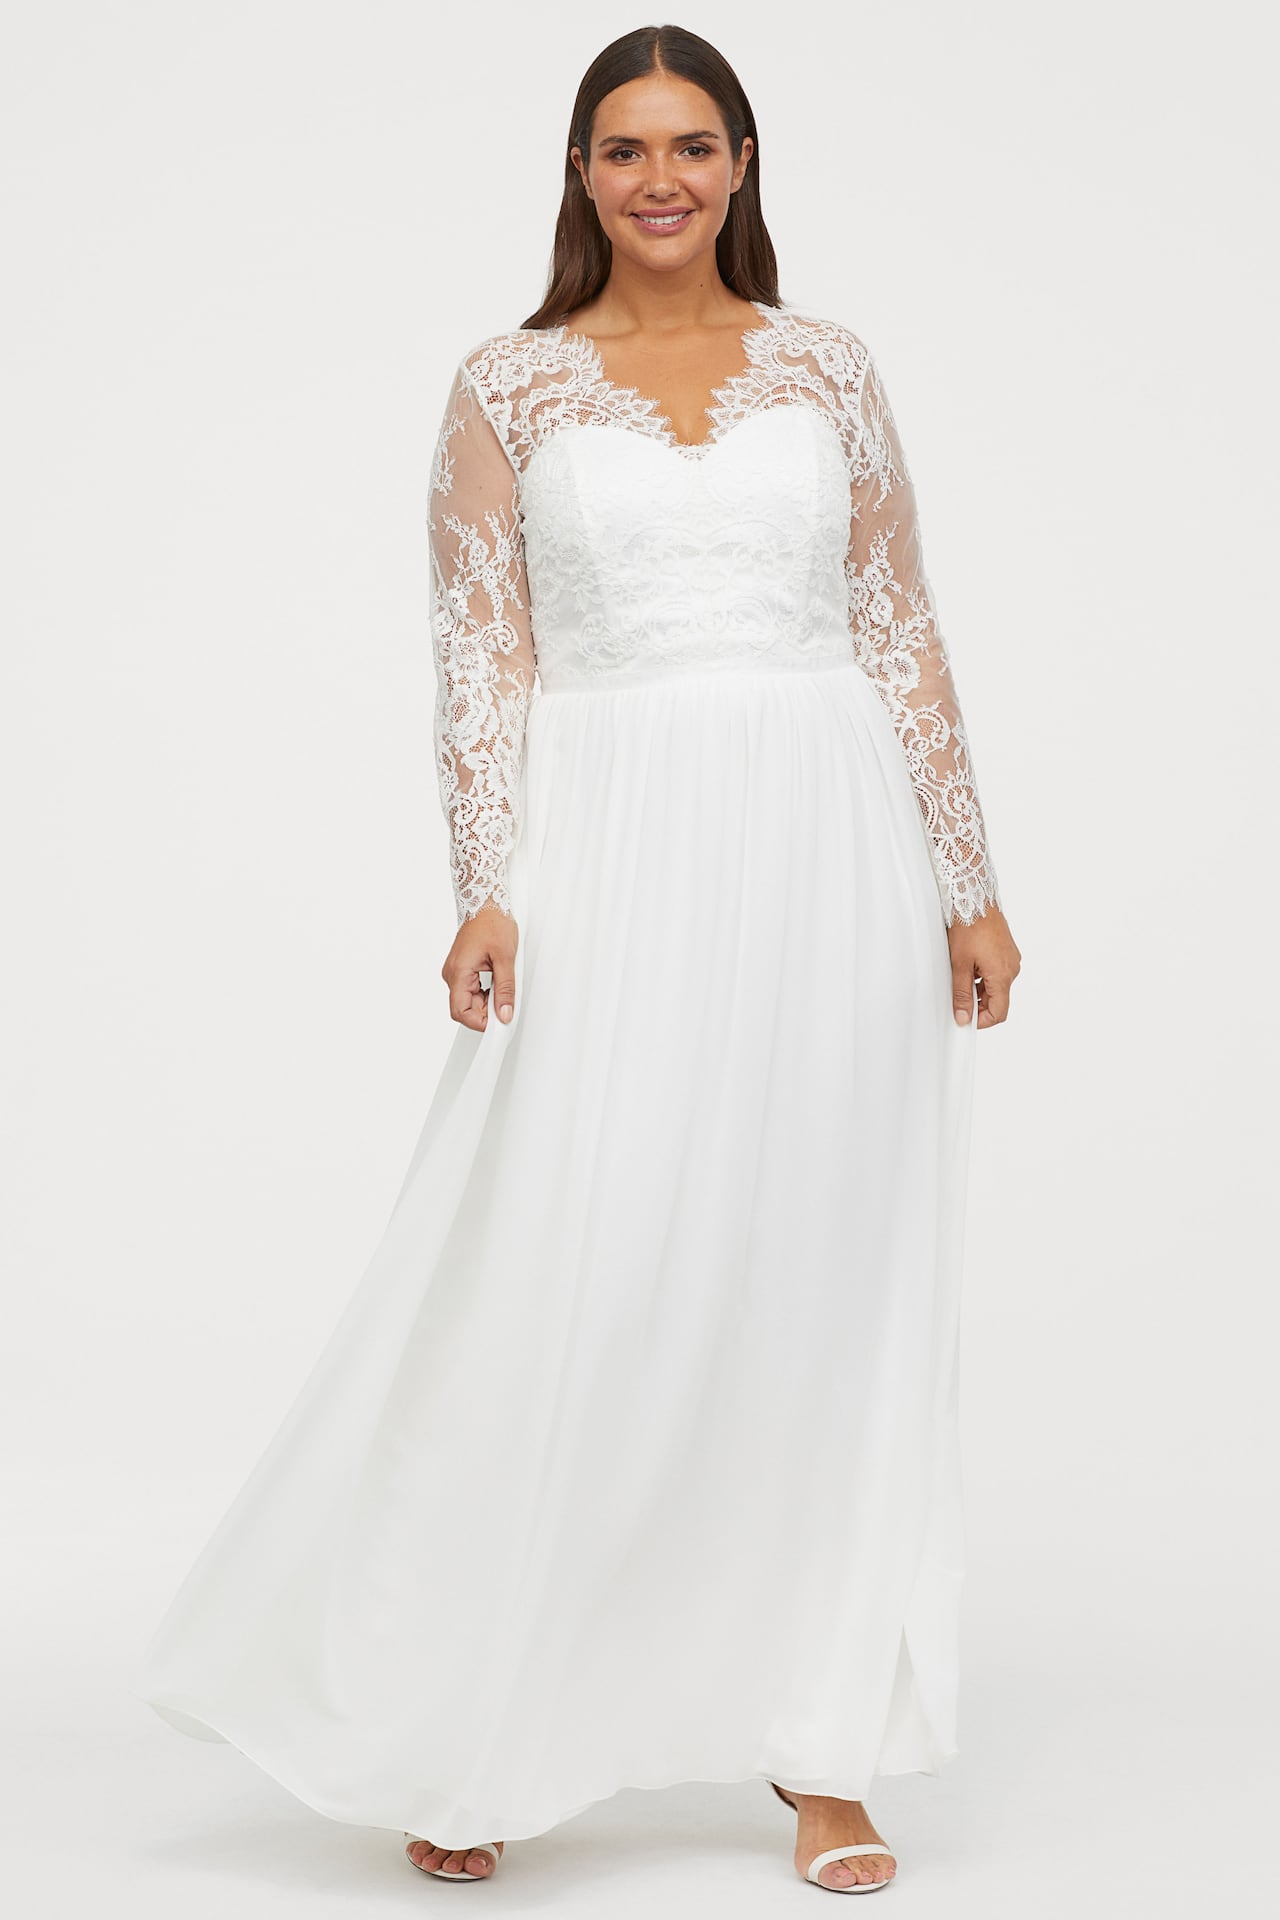 8 Bridalwear Options That Cost Under 500 Cbc Life,Formal Dresses For Wedding South Africa